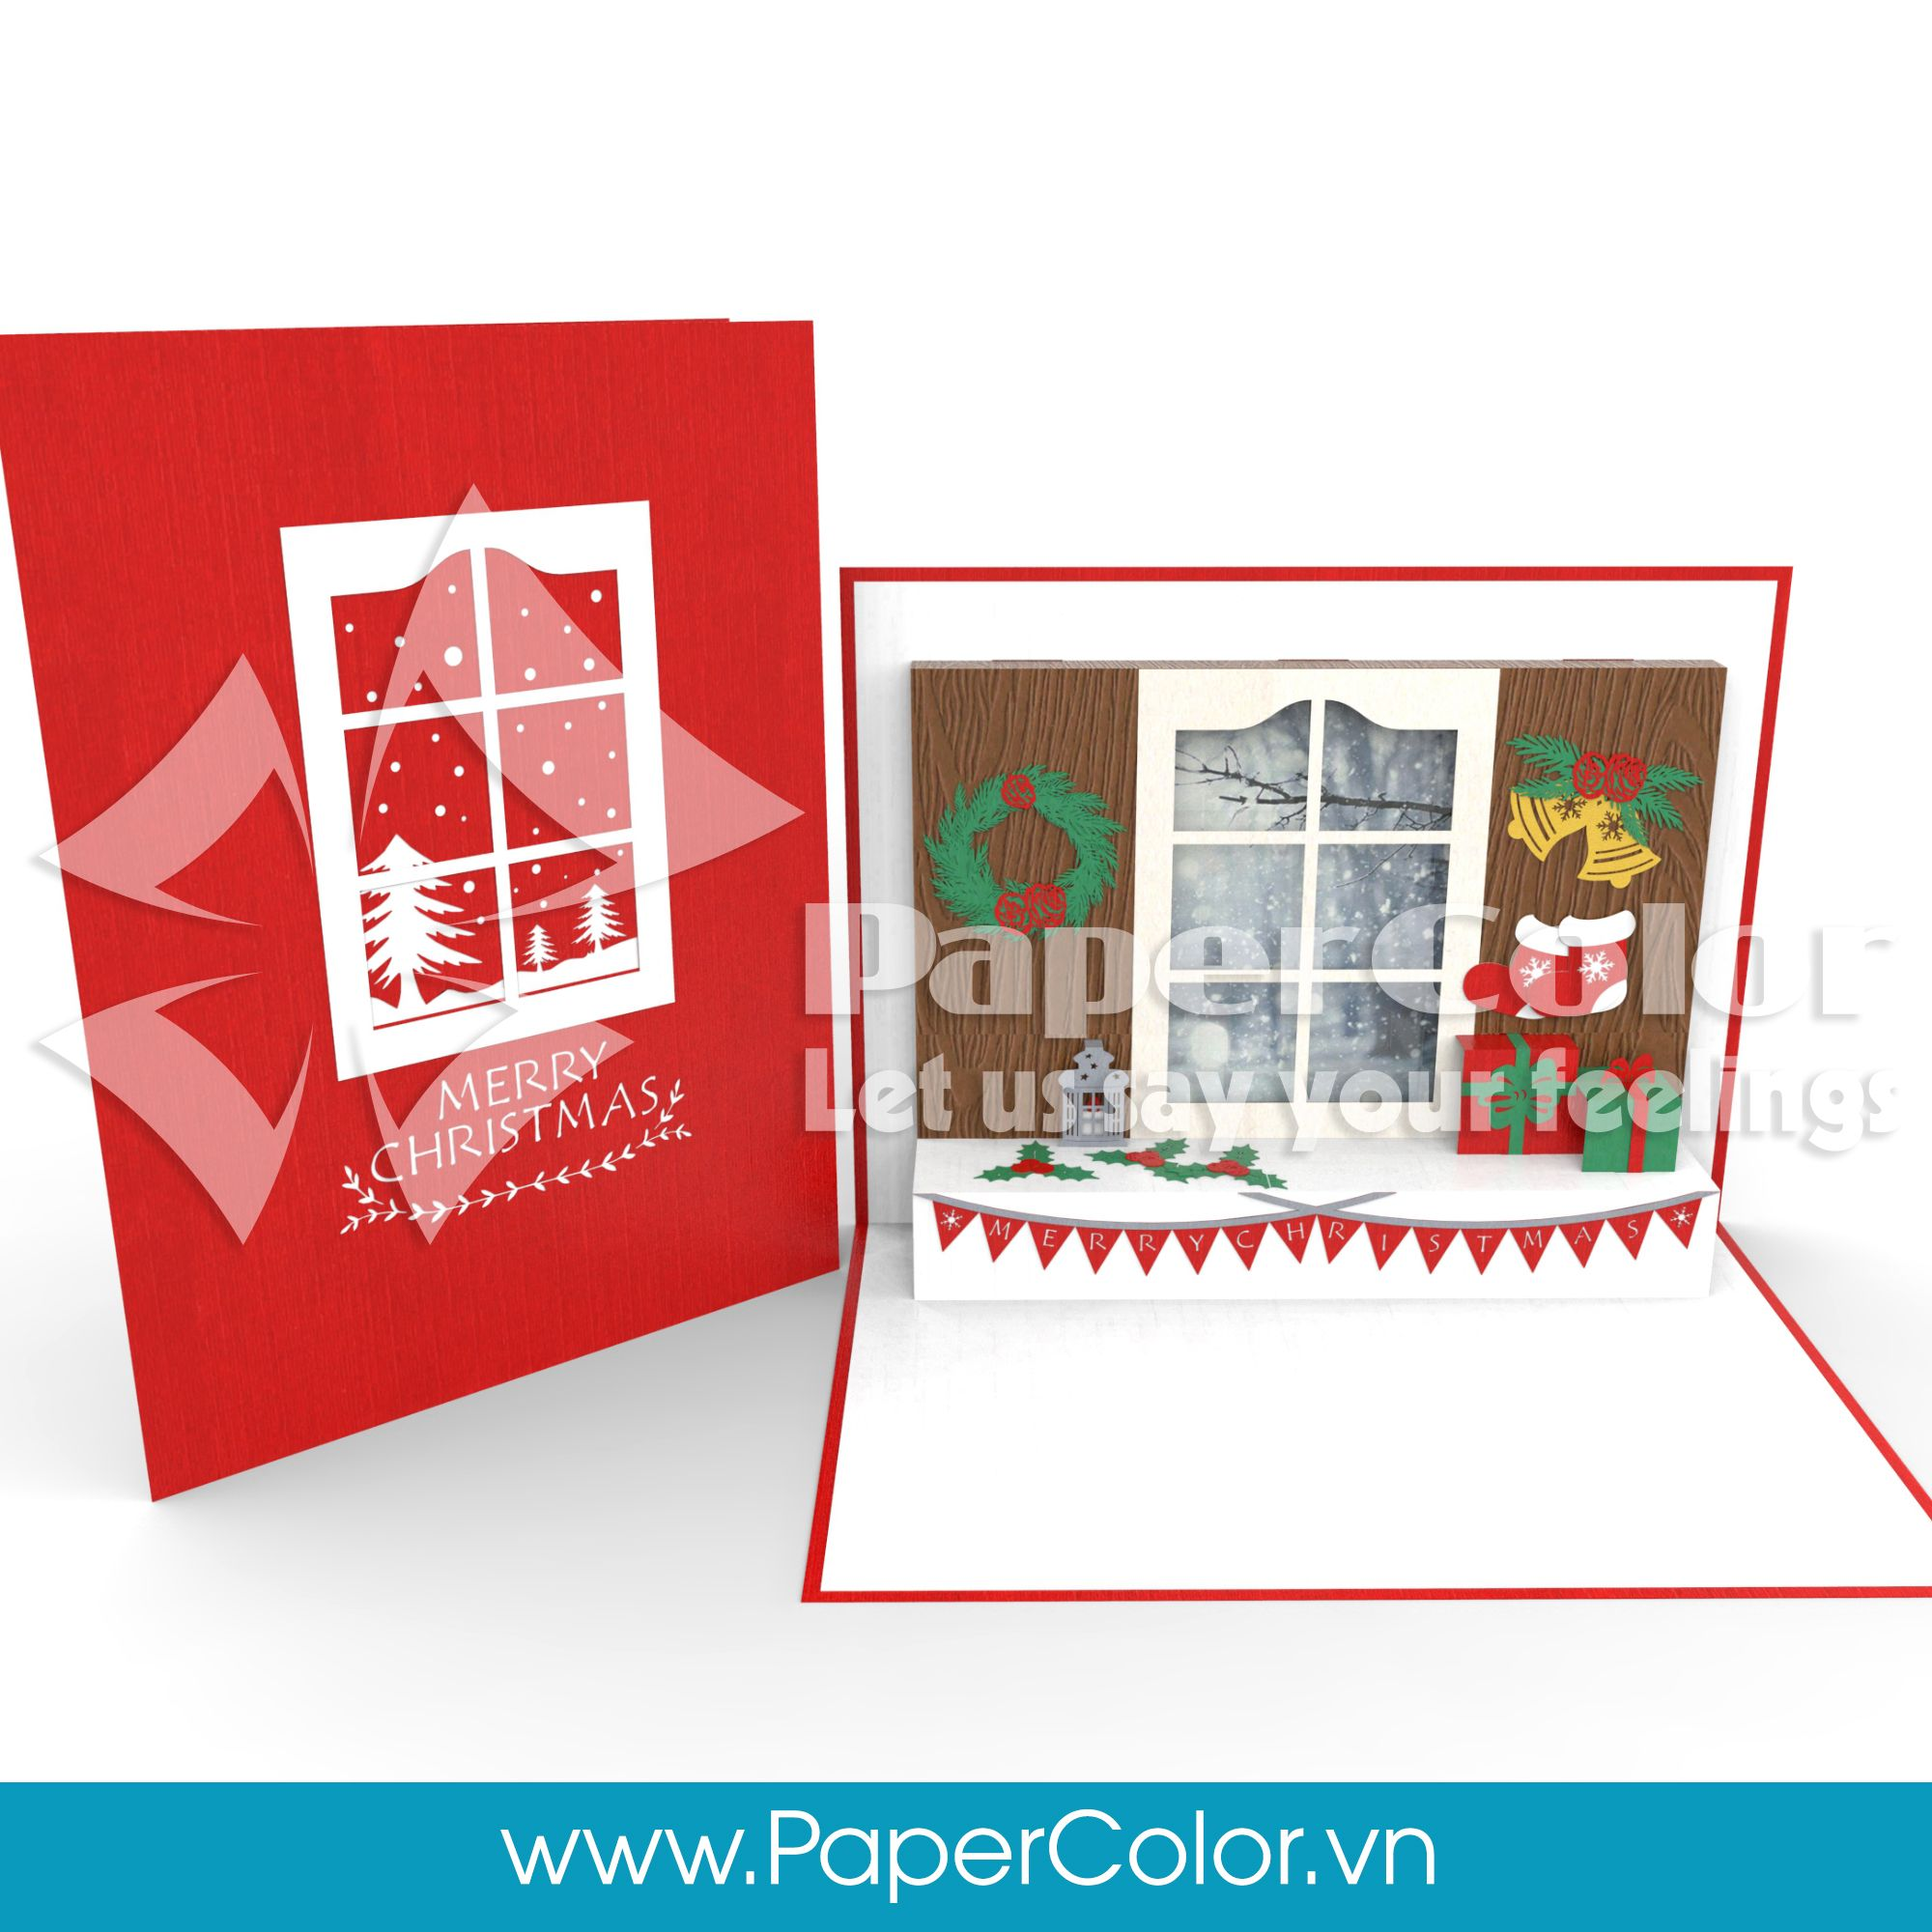 Christmas home decorating pop up card paper color pop up card christmas home decorating pop up card paper color pop up card vietnam supplier m4hsunfo